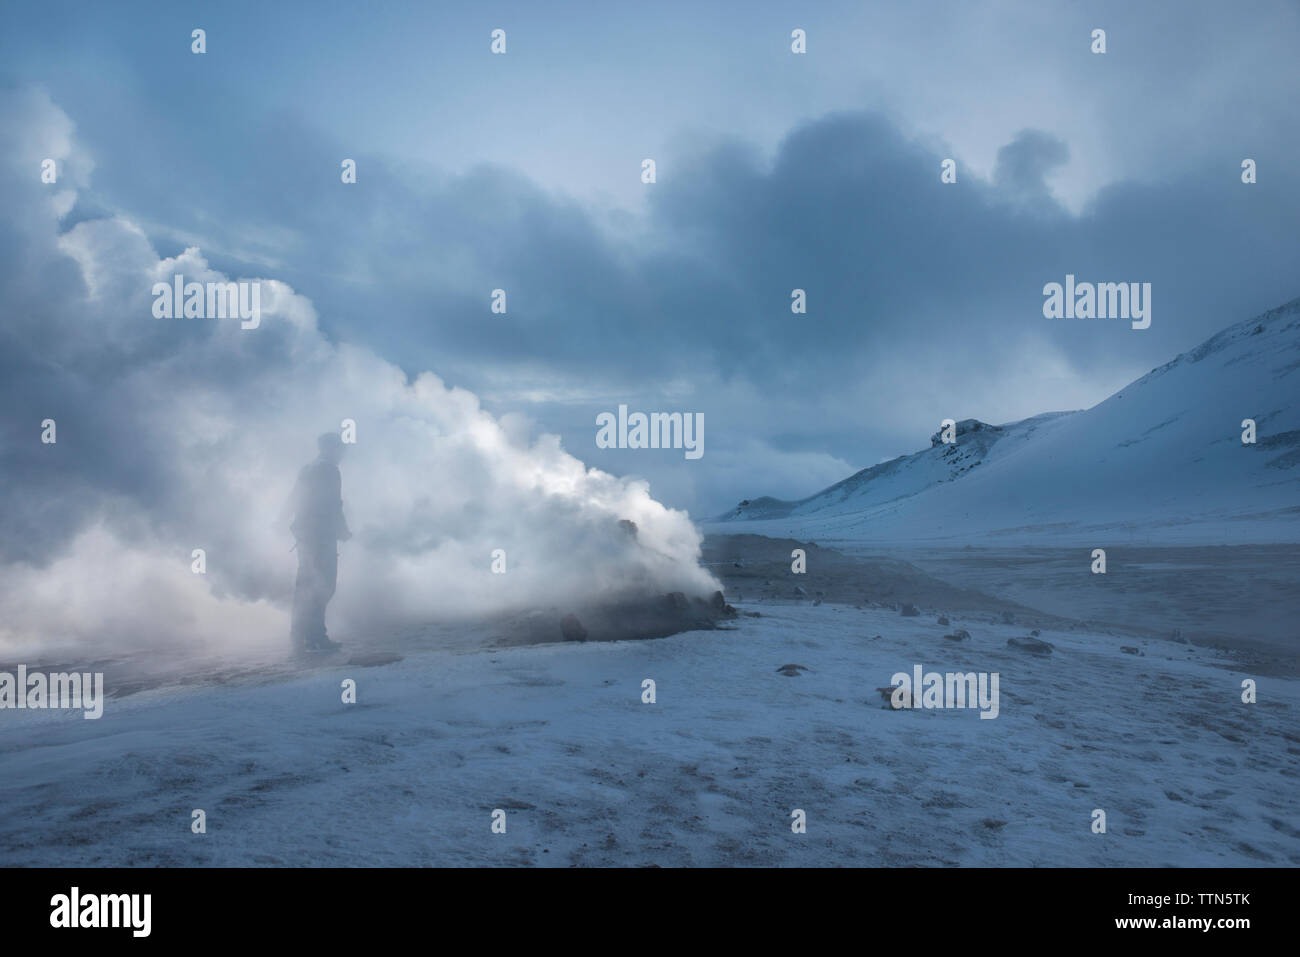 Man standing by fumaroles emitting steam on snow covered field - Stock Image